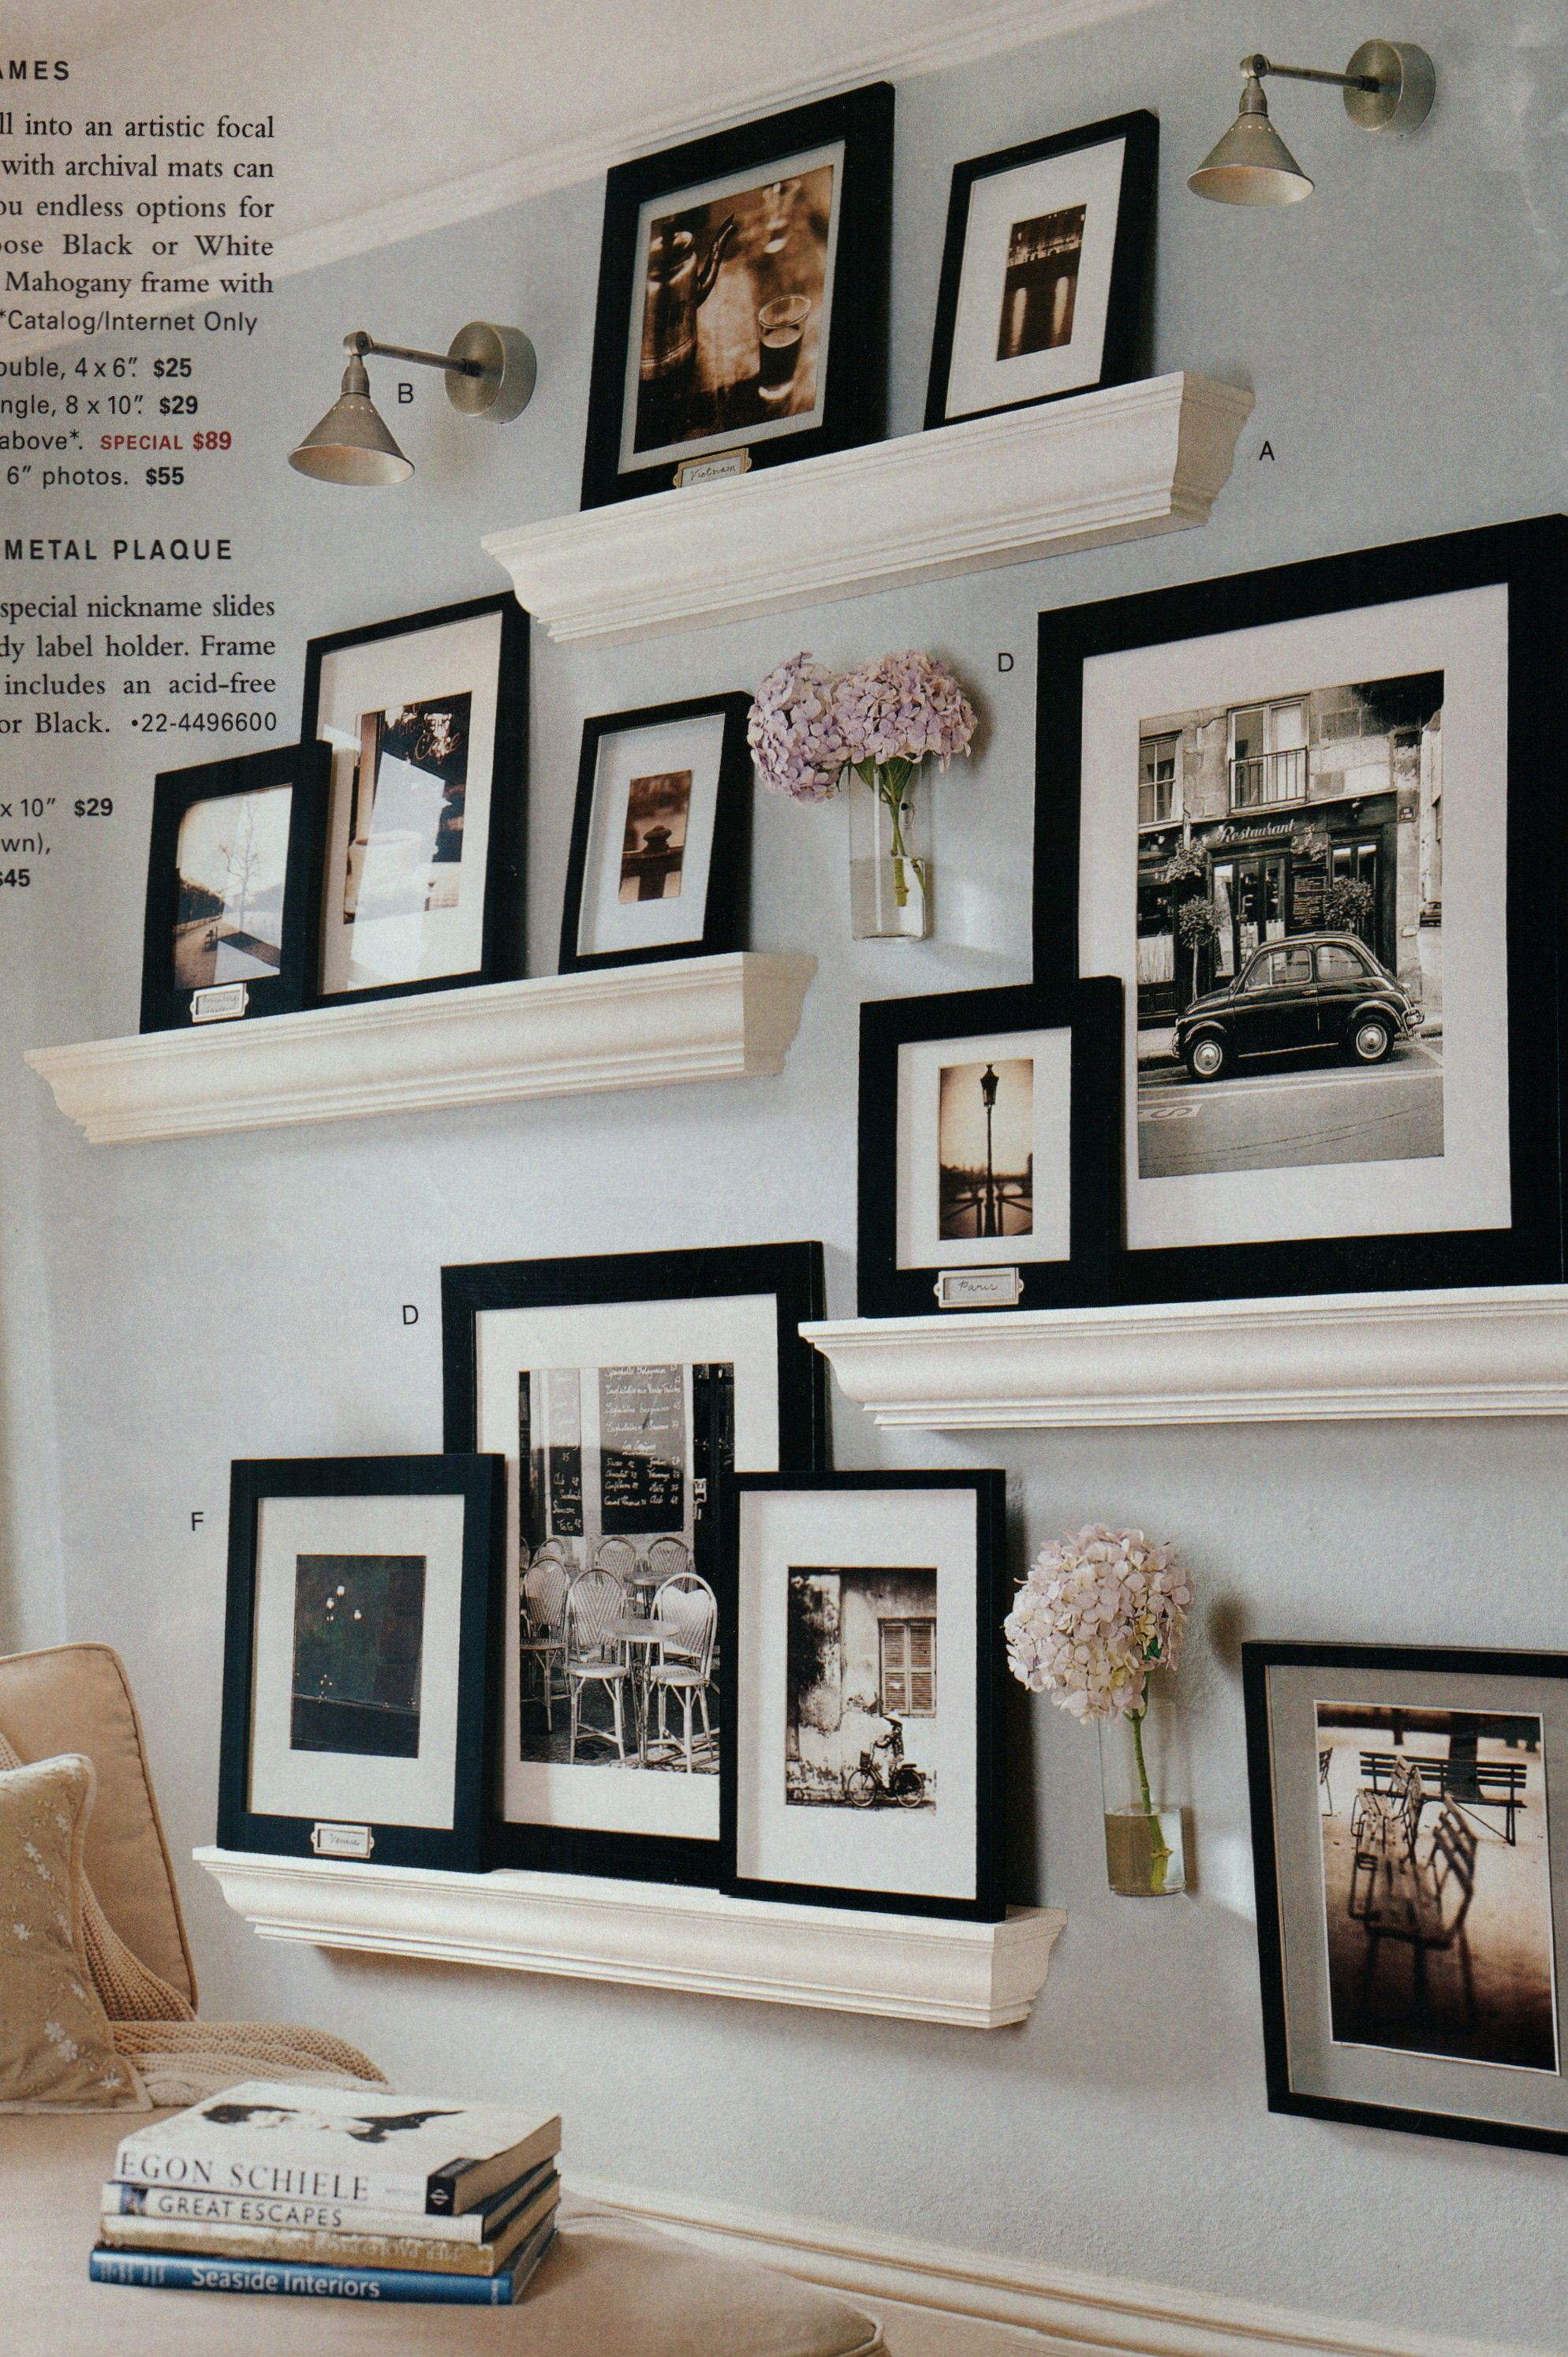 Gallery Wall Shelves And Frames From Pb Gallery Wall Shelves Decor Gallery Shelves